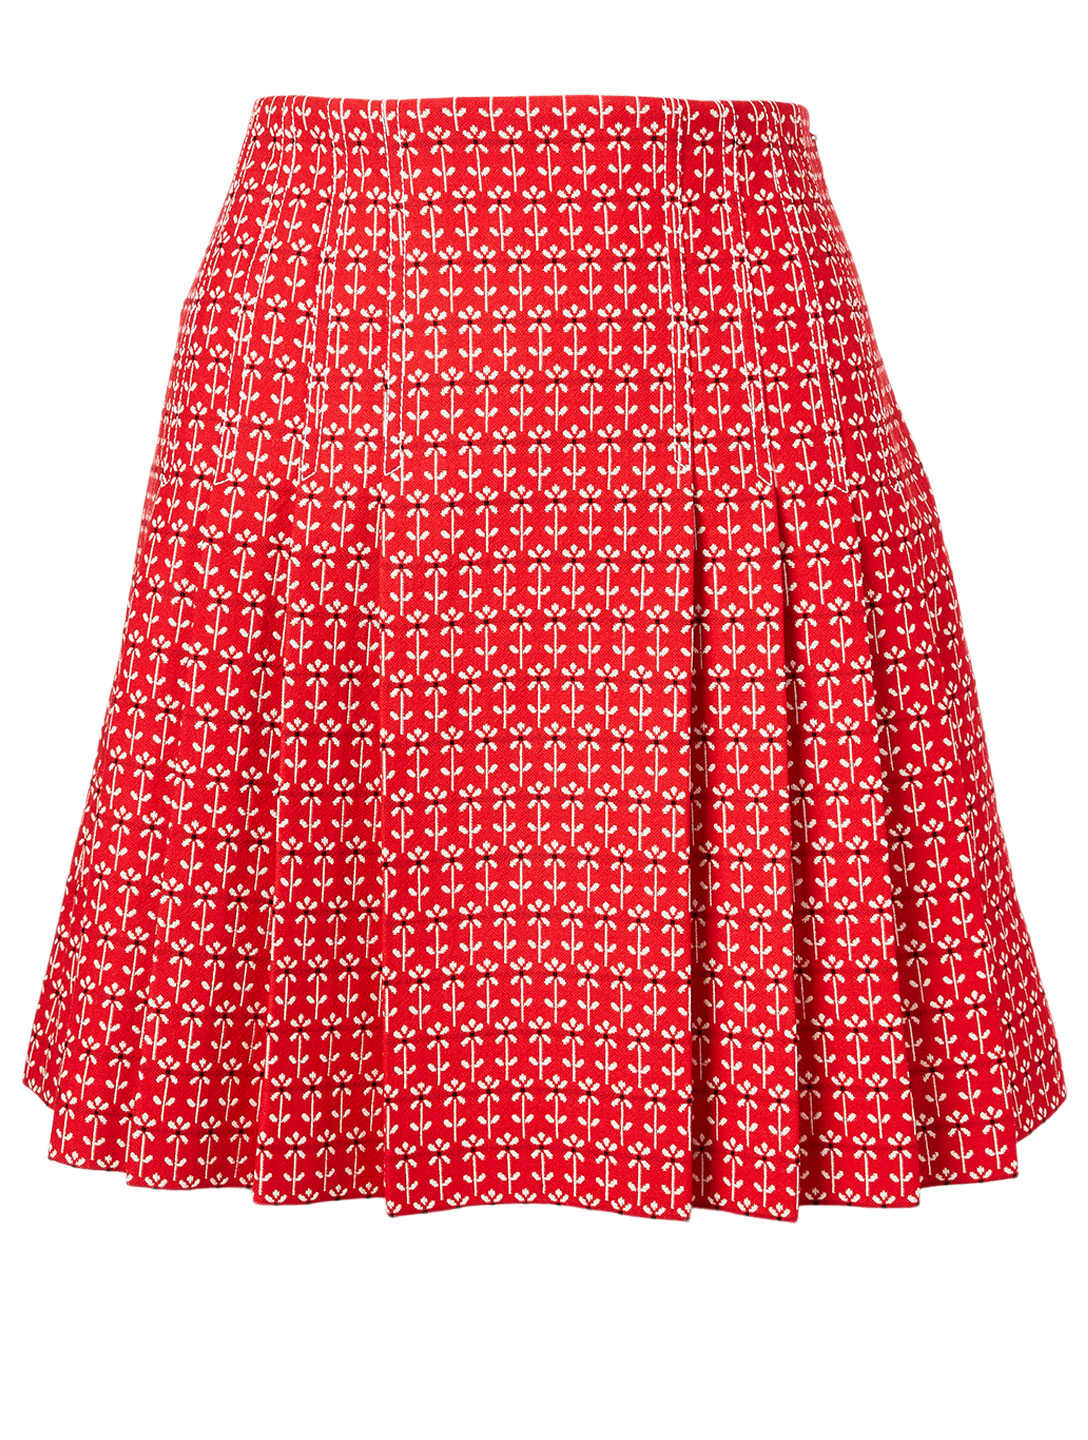 GUCCI Cotton And Wool Jacquard Mini Skirt In Daisy Print Women's Red